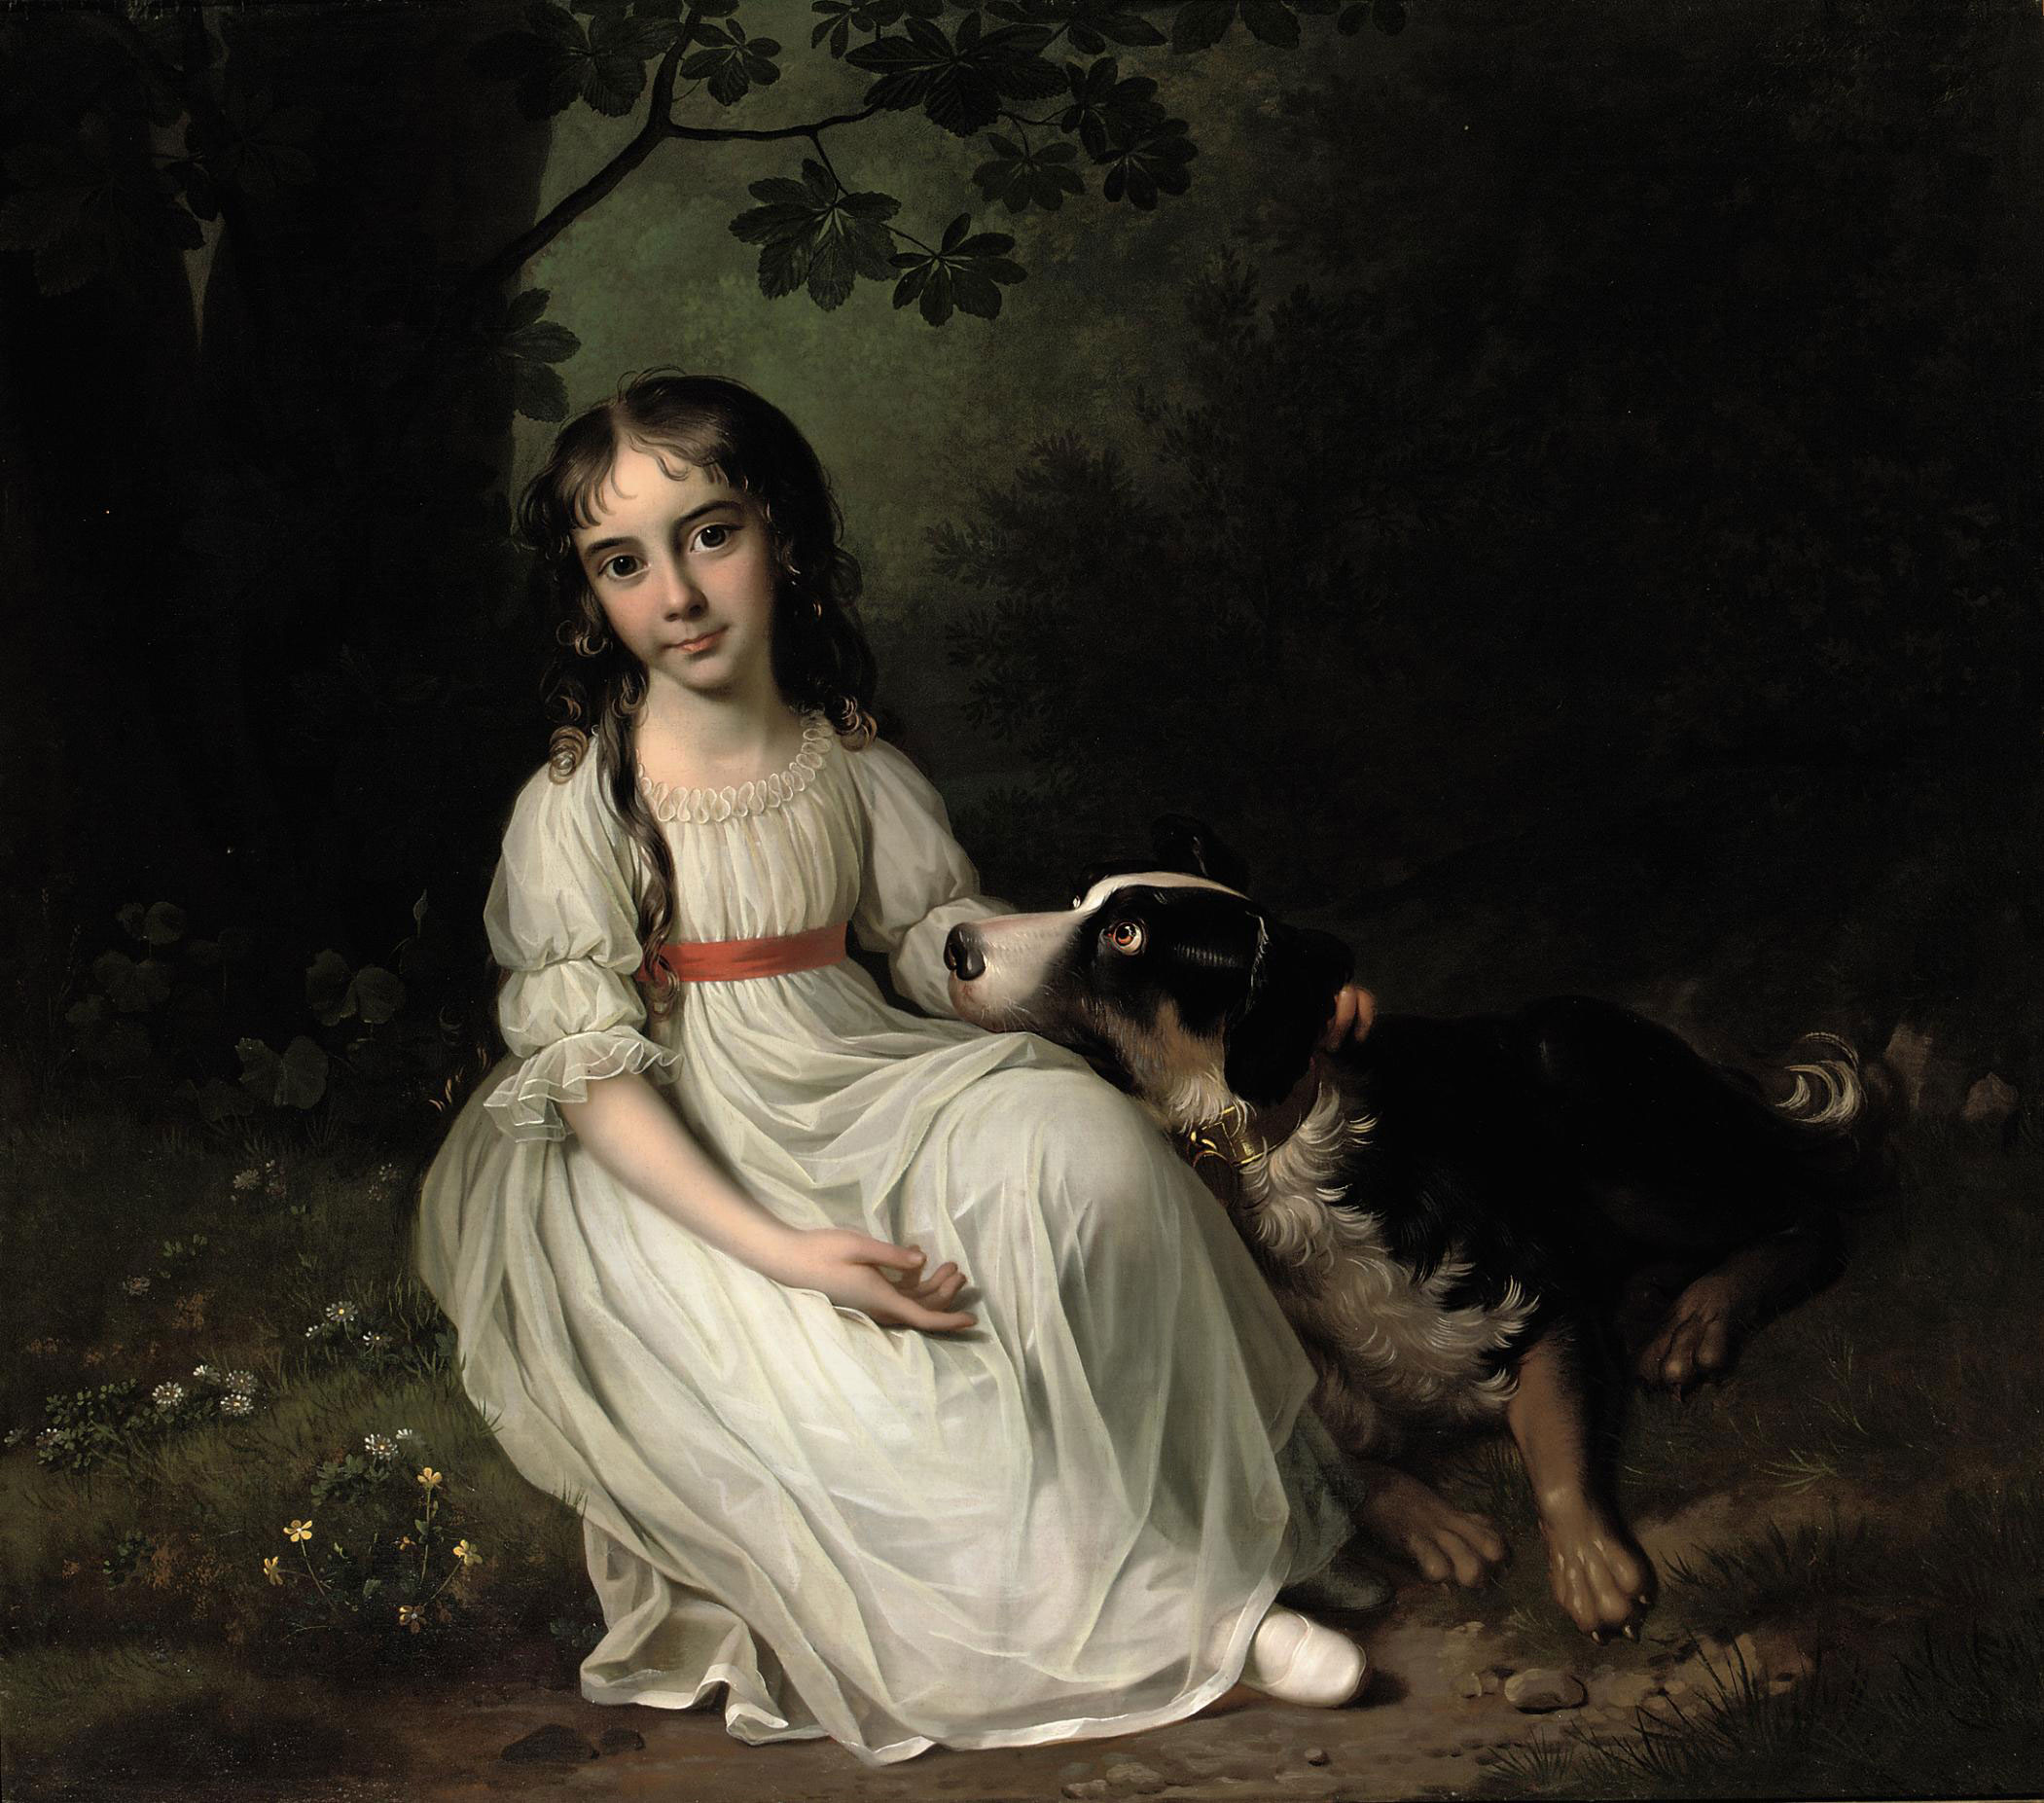 Portrait of Frederikke Maria Sophia Brockdorff, seated full-length, in a white dress, in a park landscape with her dog beside her